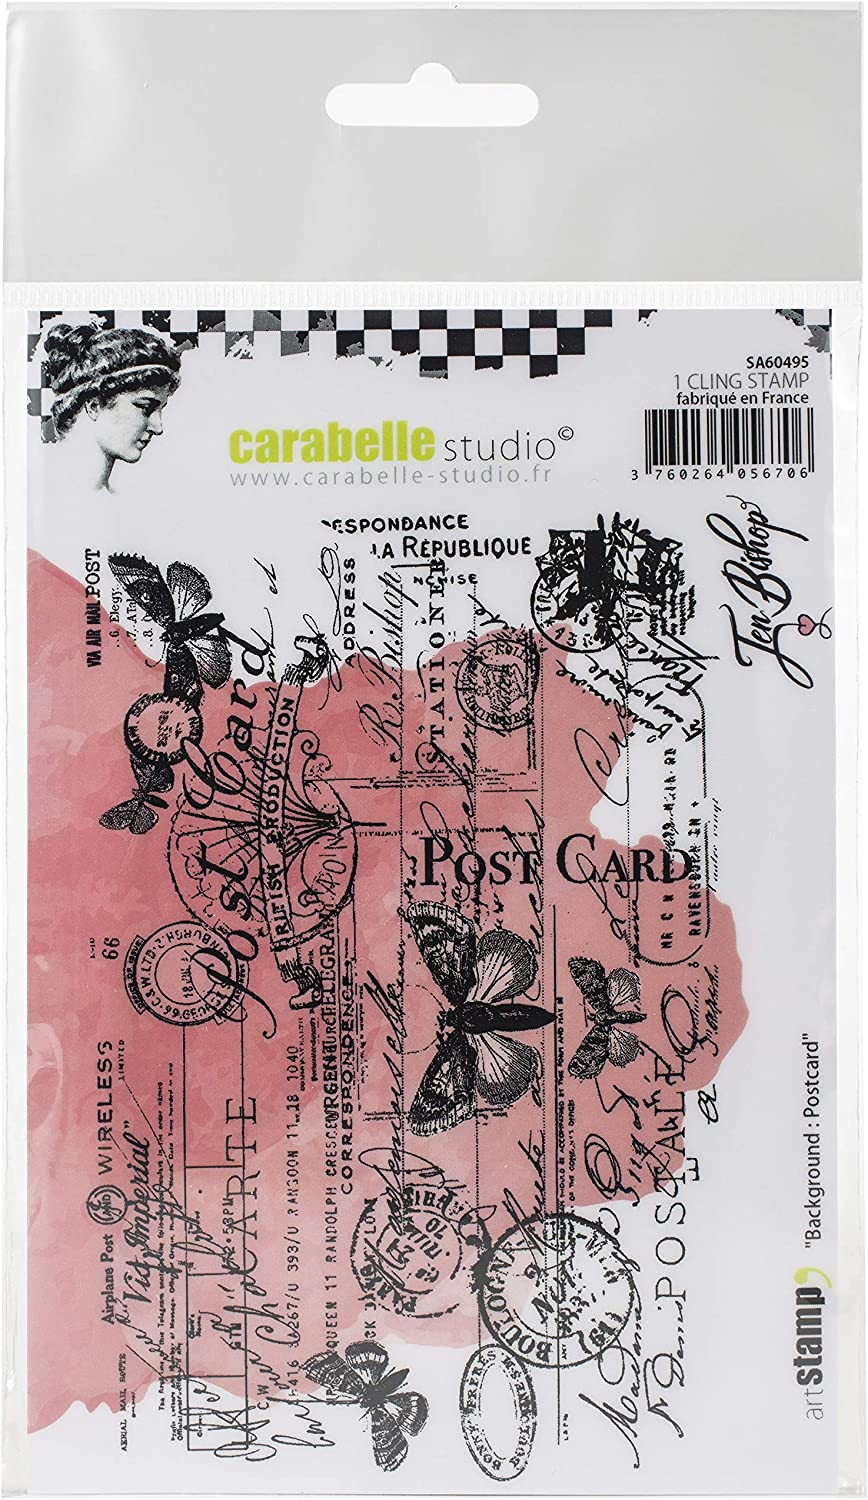 Postcard Background us:one size CARABELLE STUDIO Cling Stamp